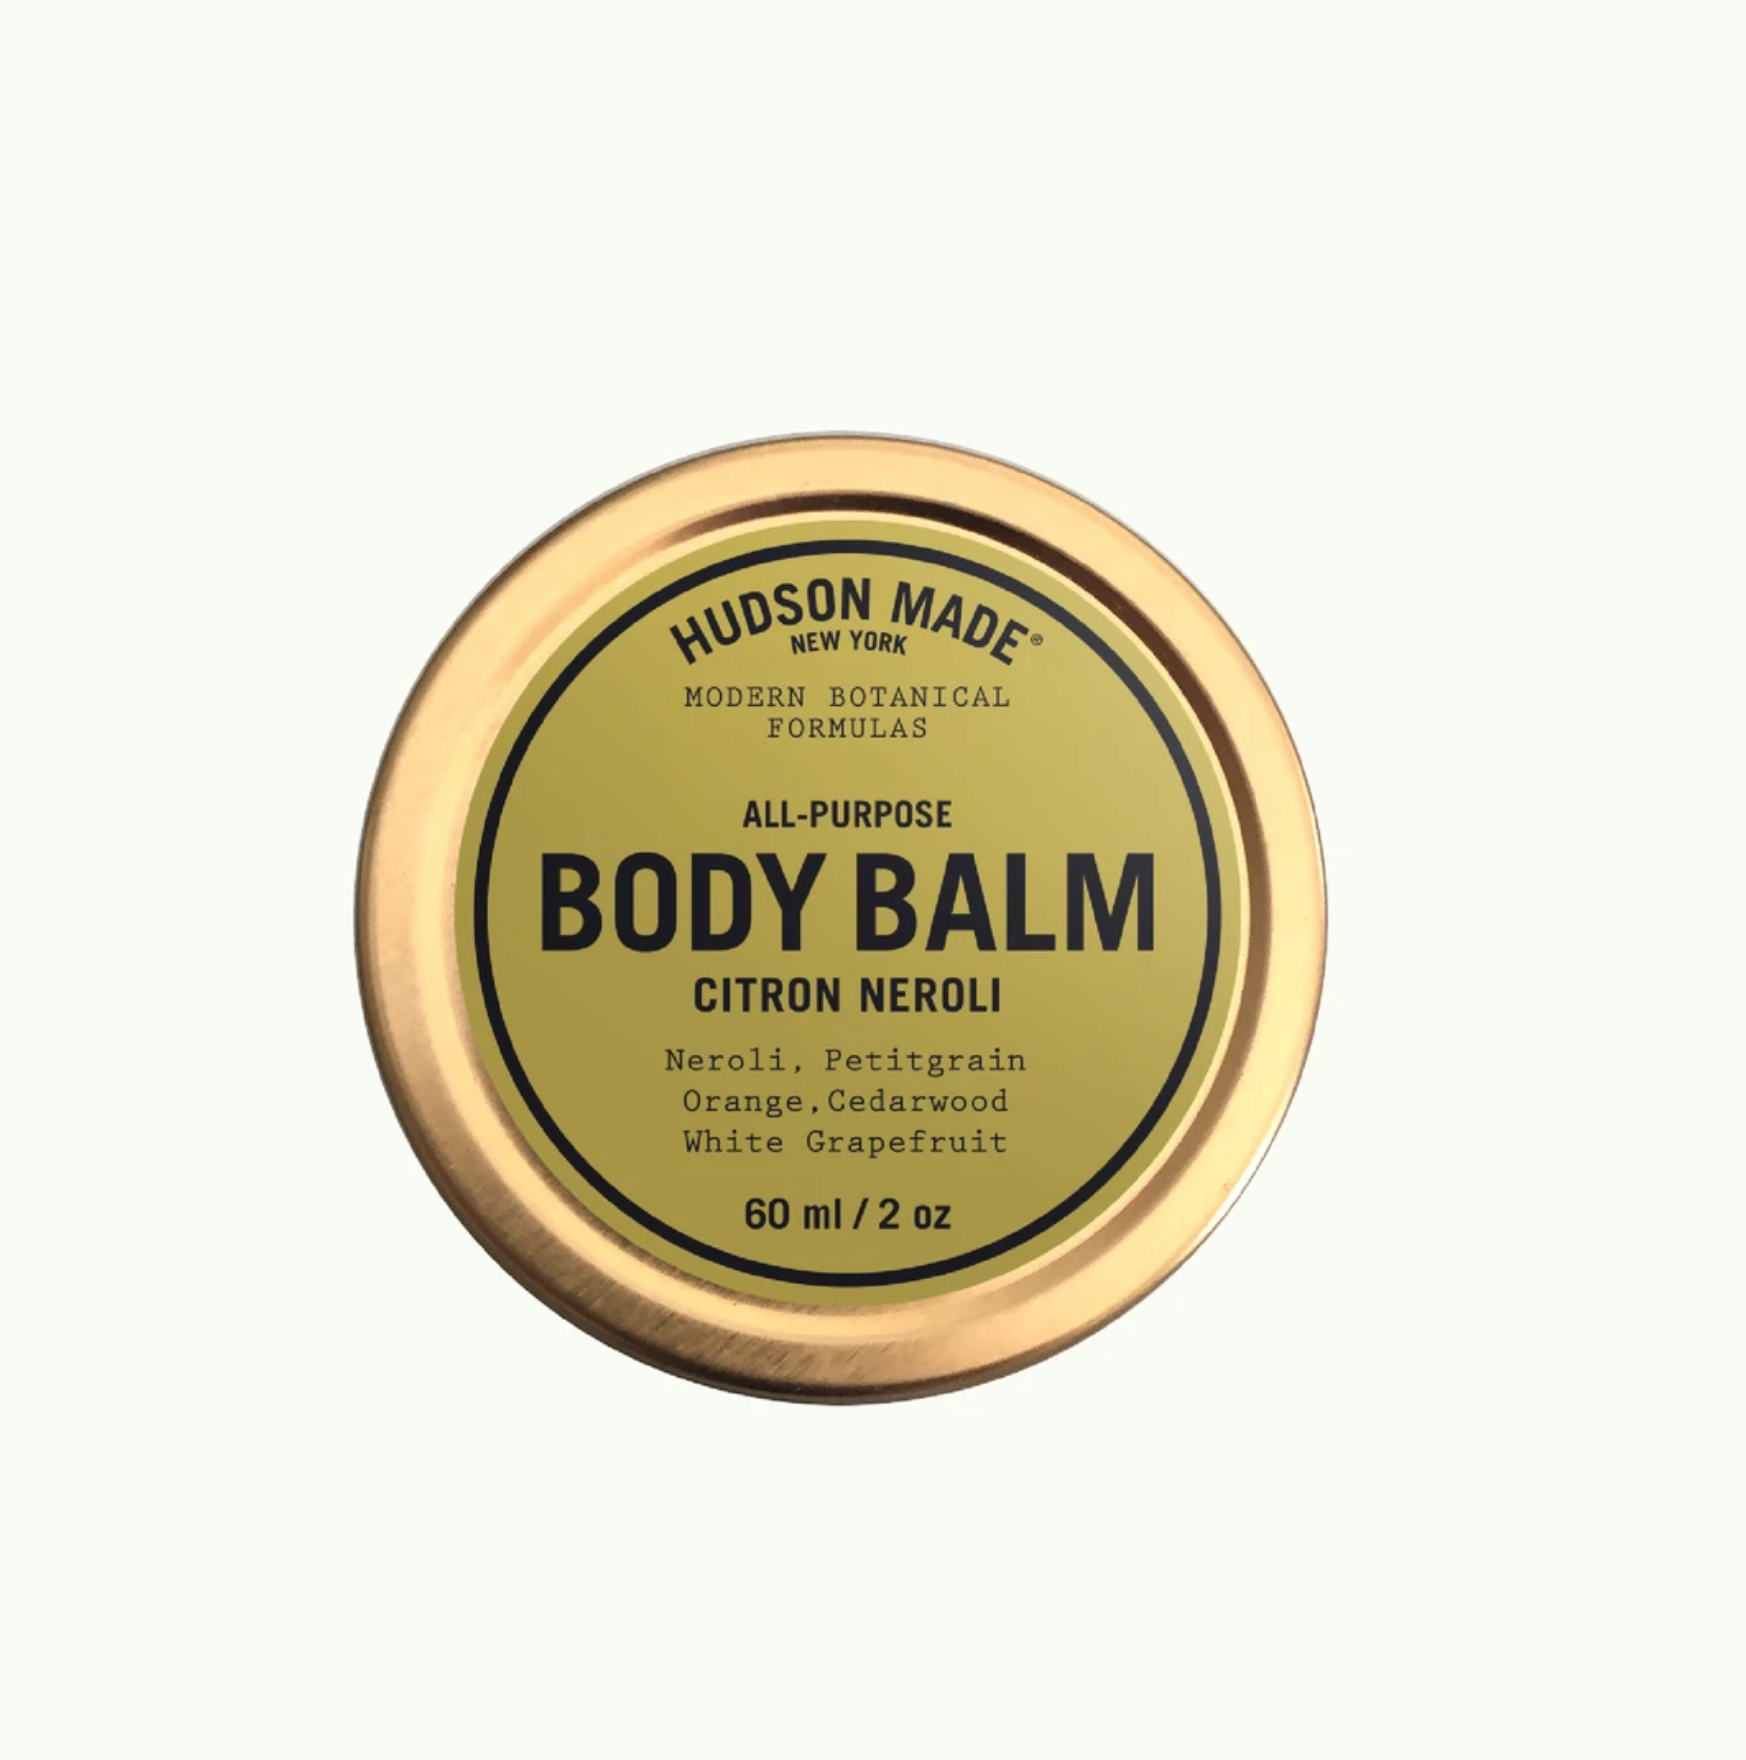 Citron neroli body balm by hudson made